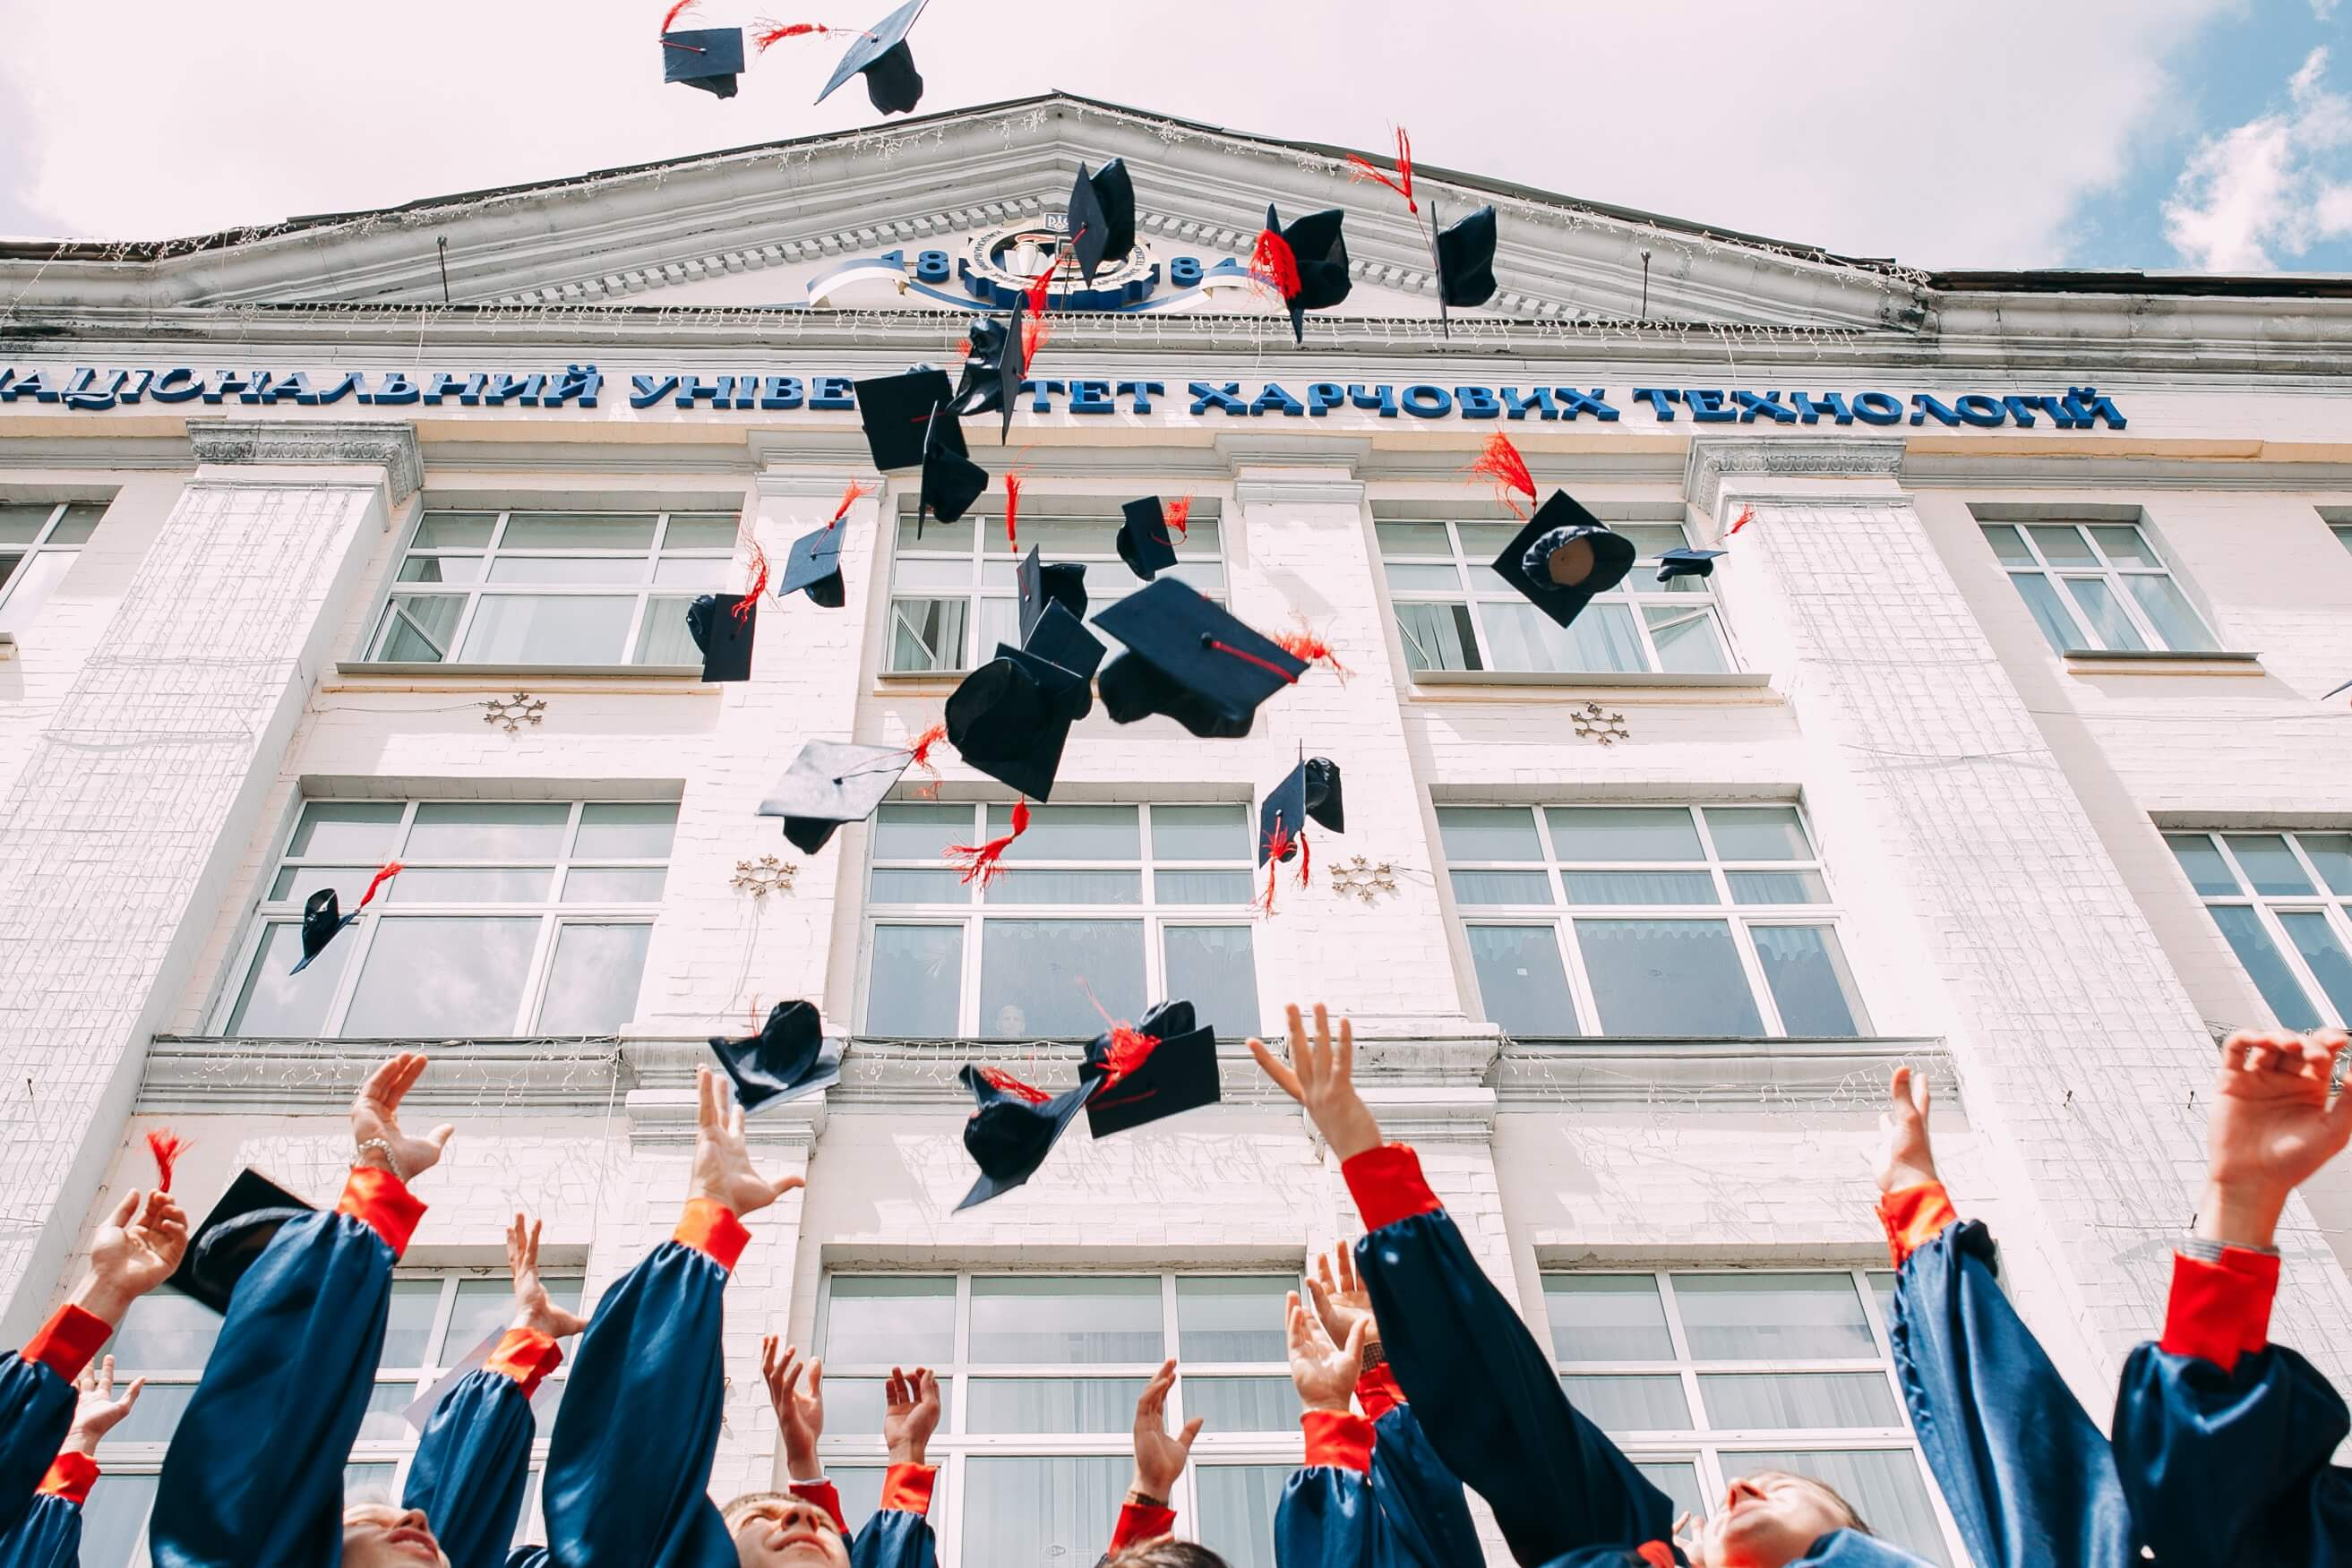 Higher Education is Bound for the Cloud